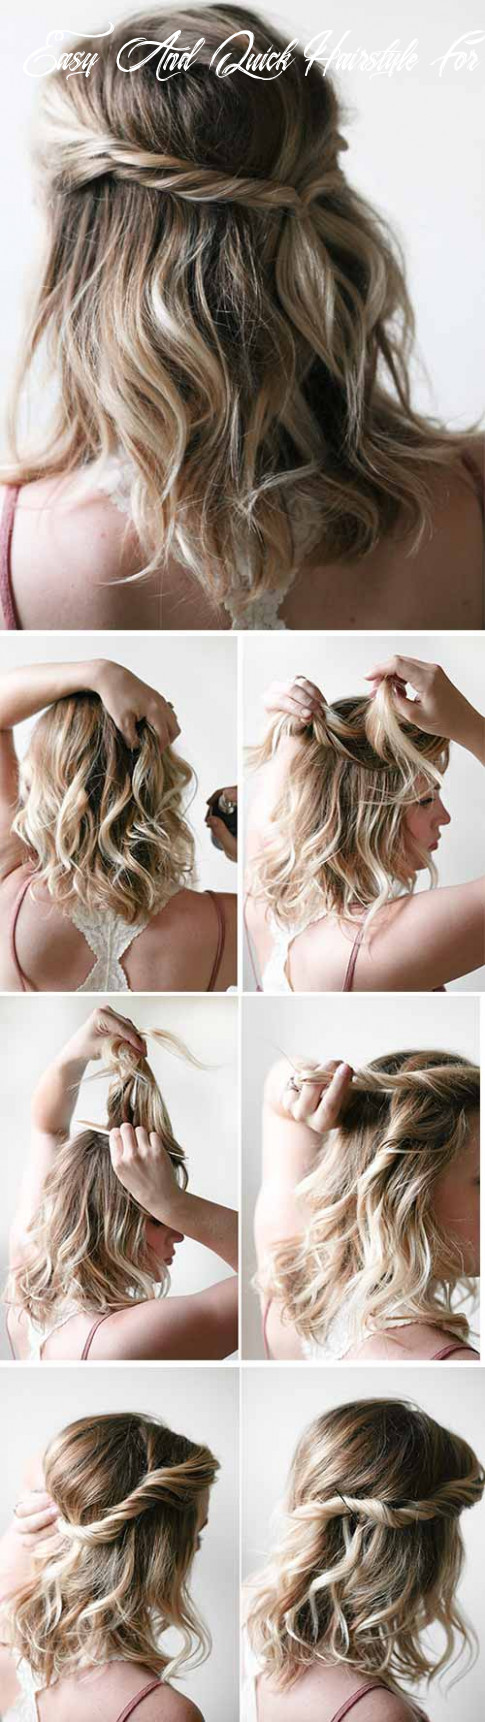 8 incredible diy short hairstyles a step by step guide easy and quick hairstyle for short hair